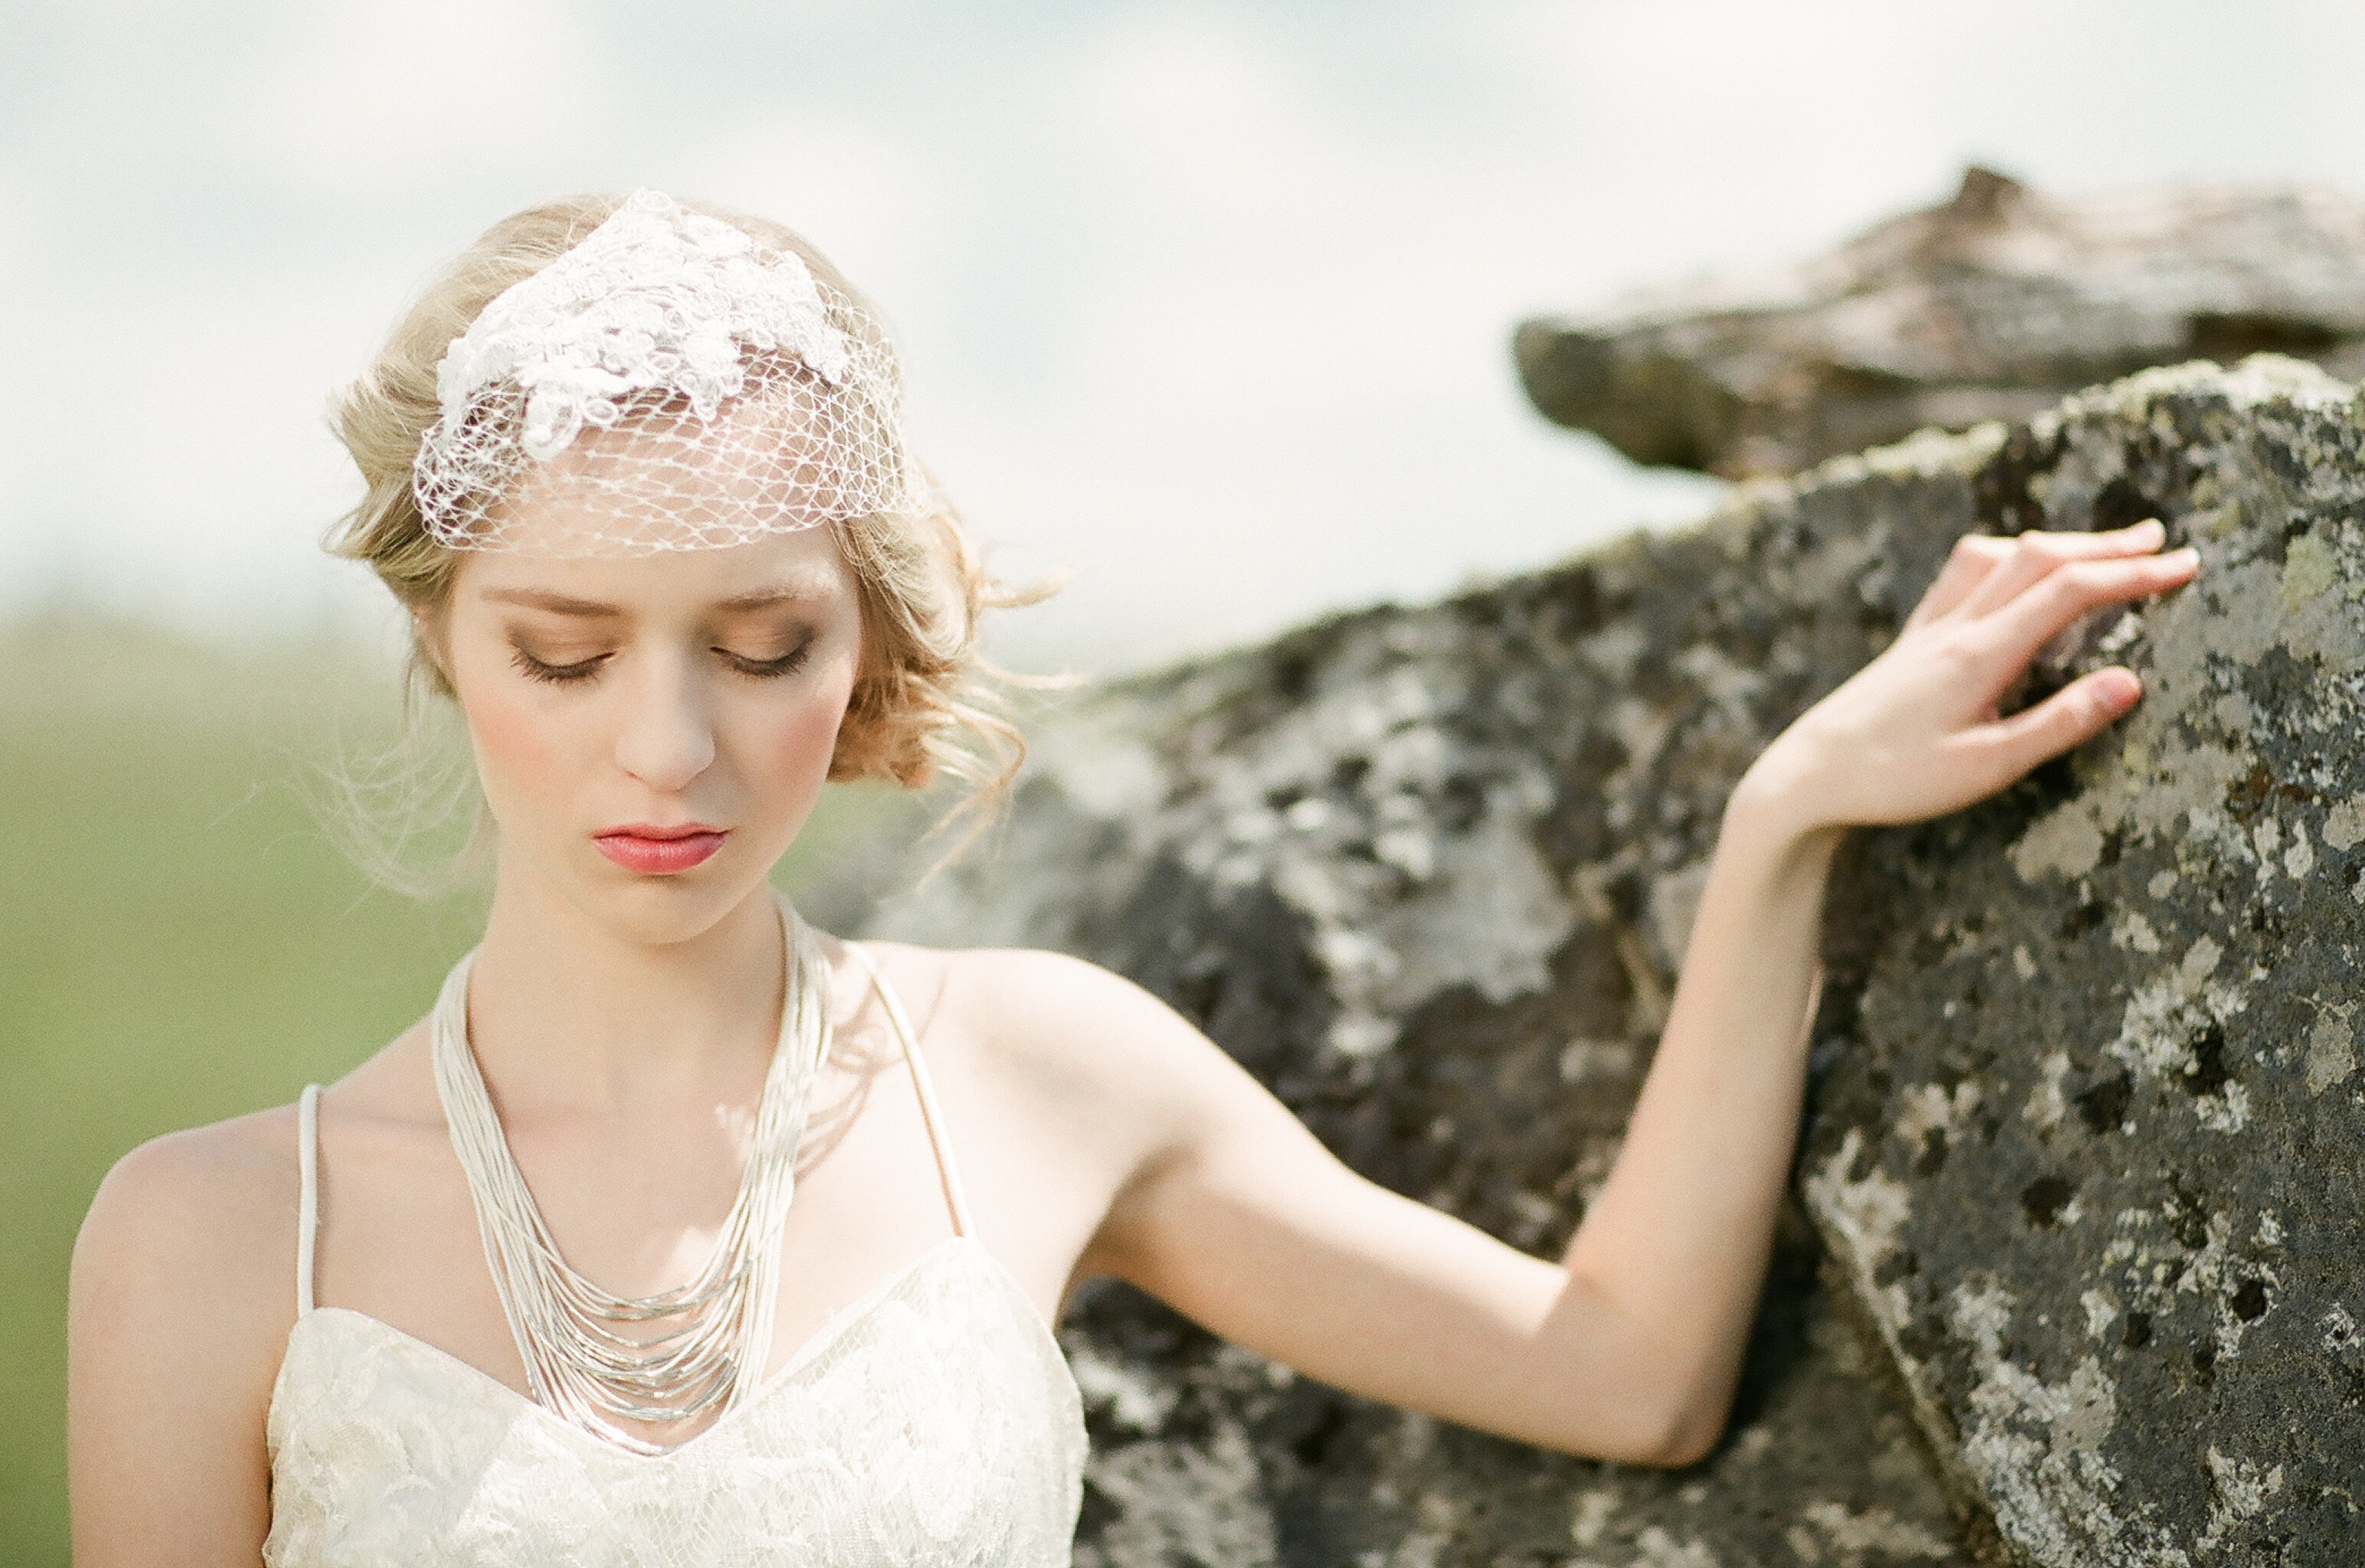 Good Wedding Makeup : Fotos - The Great Gatsby Makeup Maurizio Silvi Shares The ...